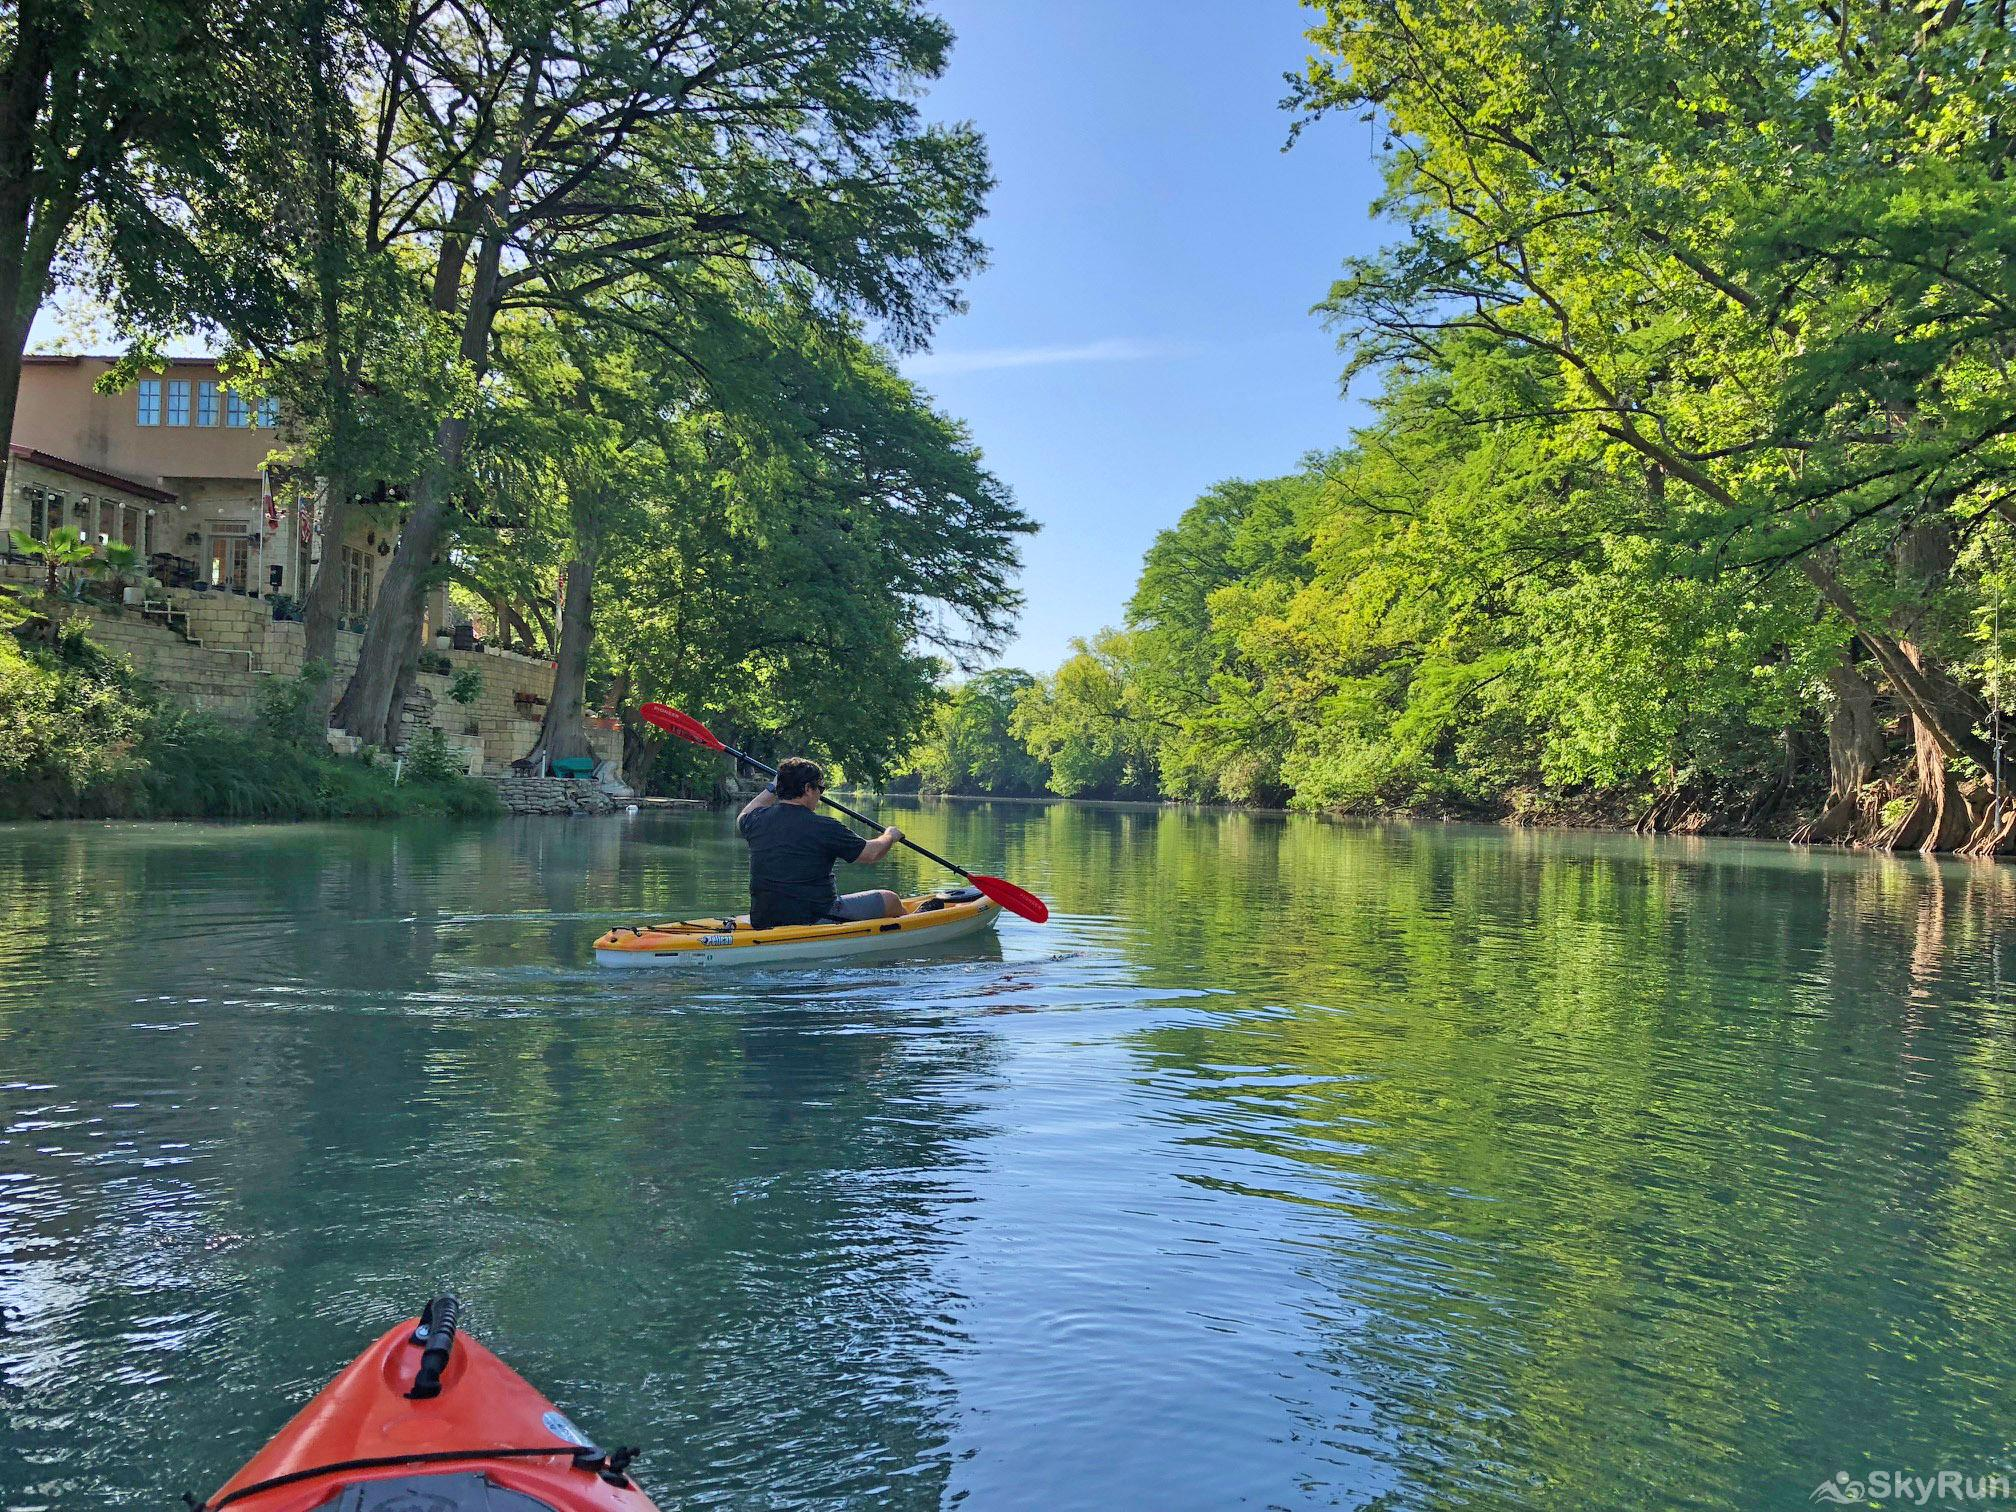 MAVERICK'S RIVER HAUS & GUEST HAUS Your 'Backyard' is the Perfect Place to Paddle or Float